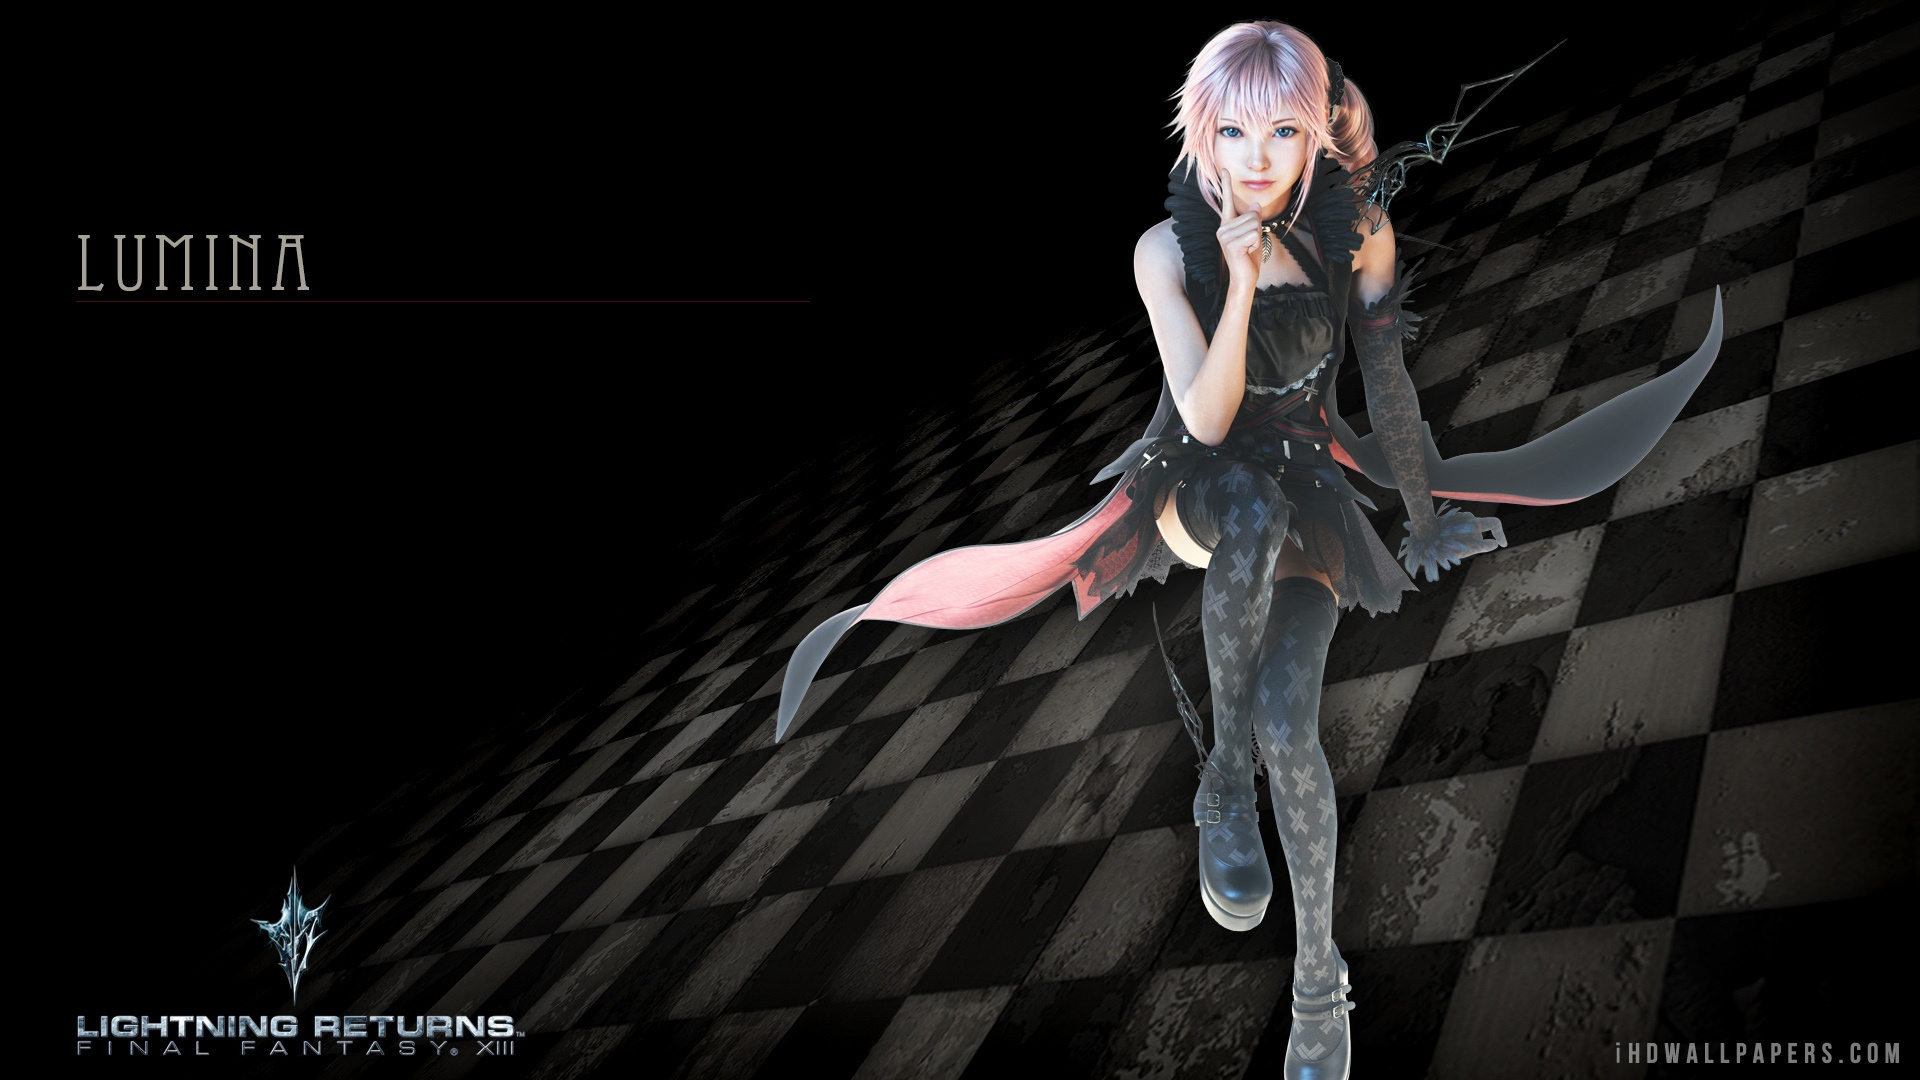 in Lightning Returns Final Fantasy XIII HD Wallpaper   iHD Wallpapers 1920x1080